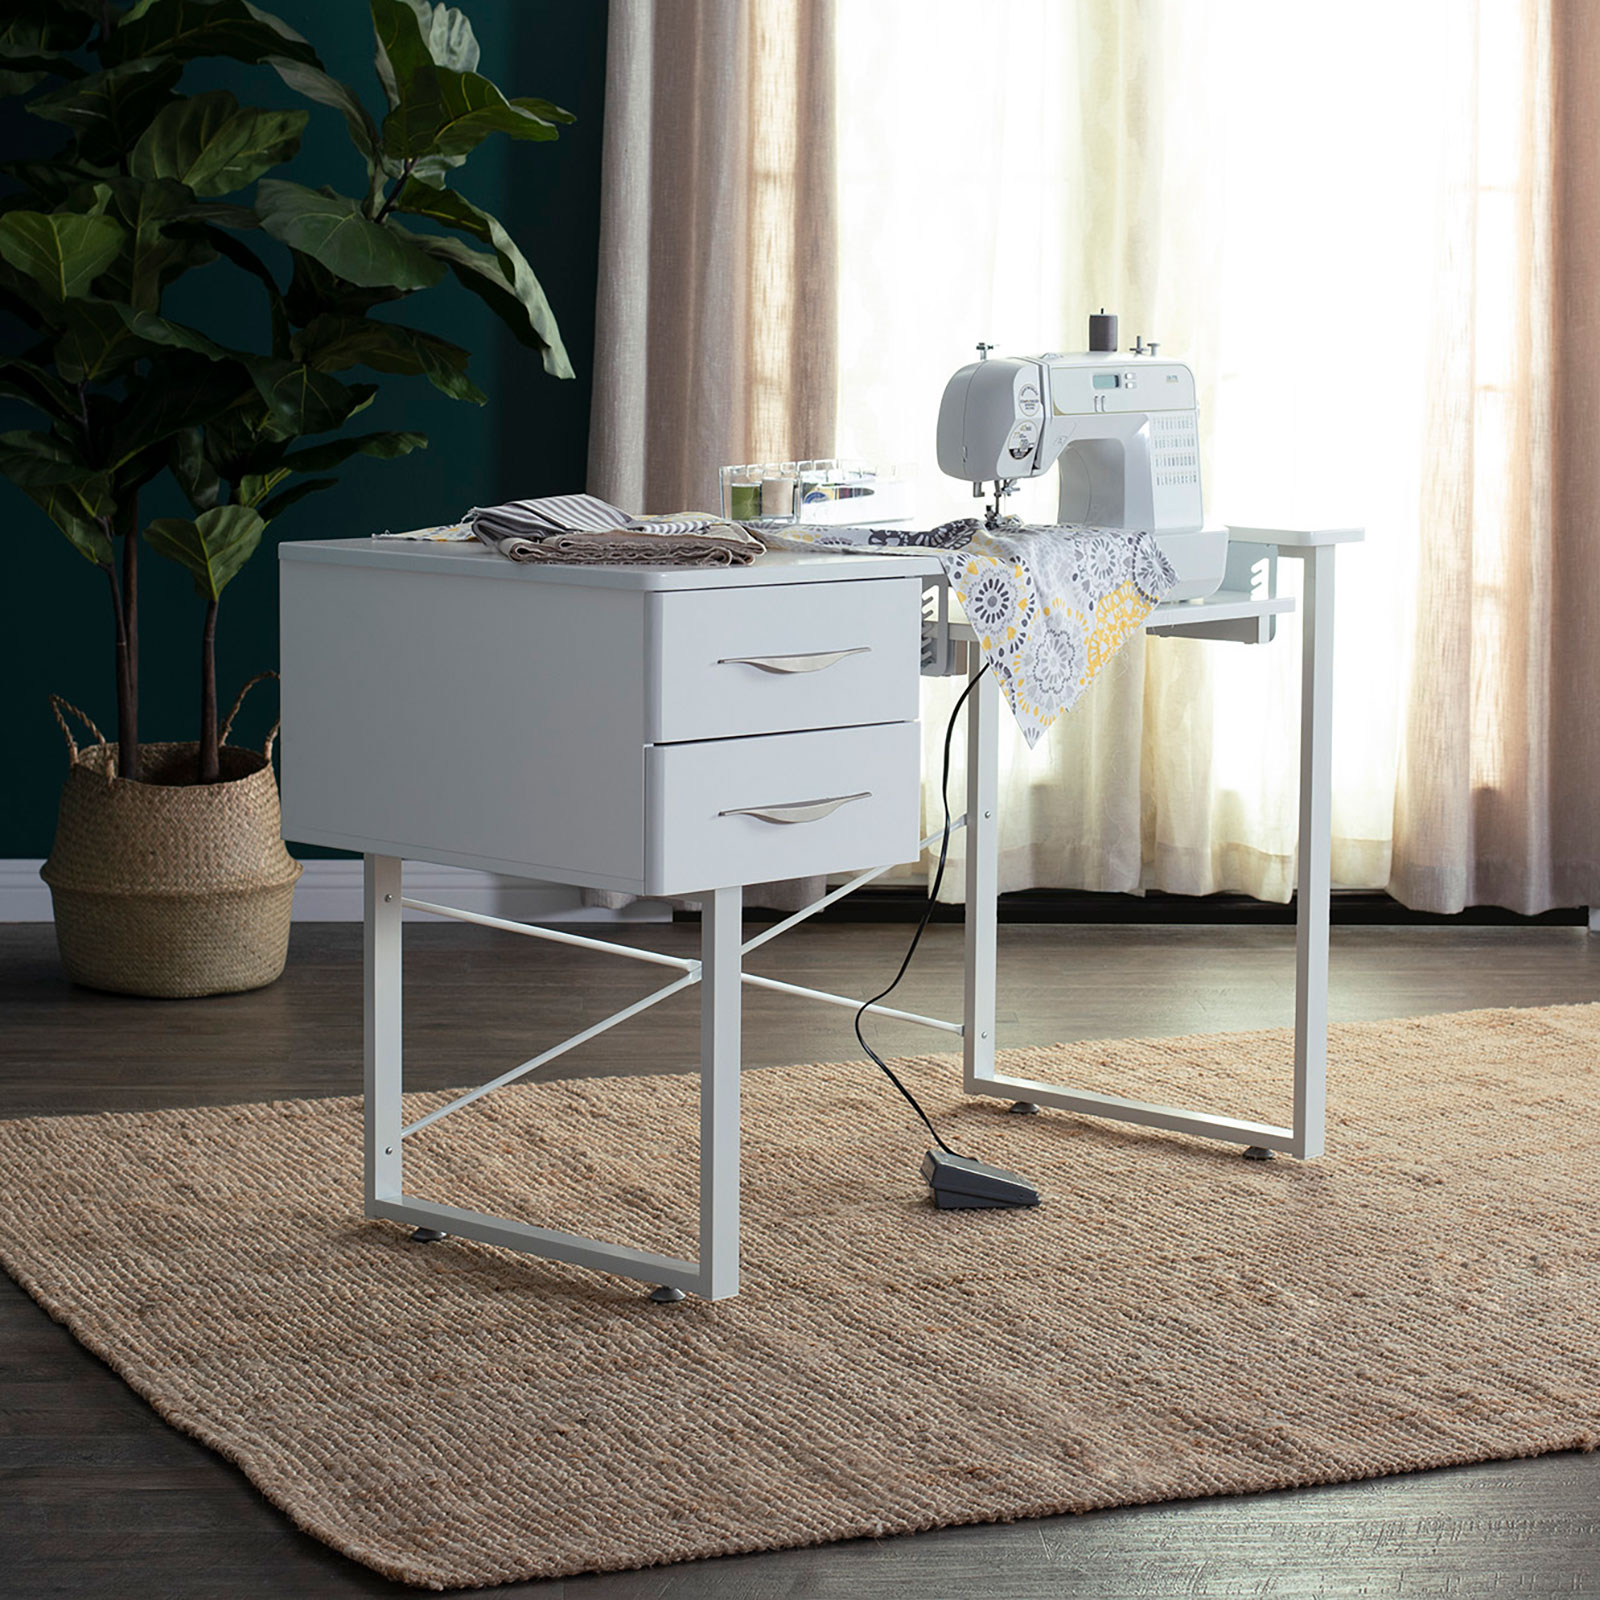 13398-Pro-Line-Sewing-Table-RS1a-ext